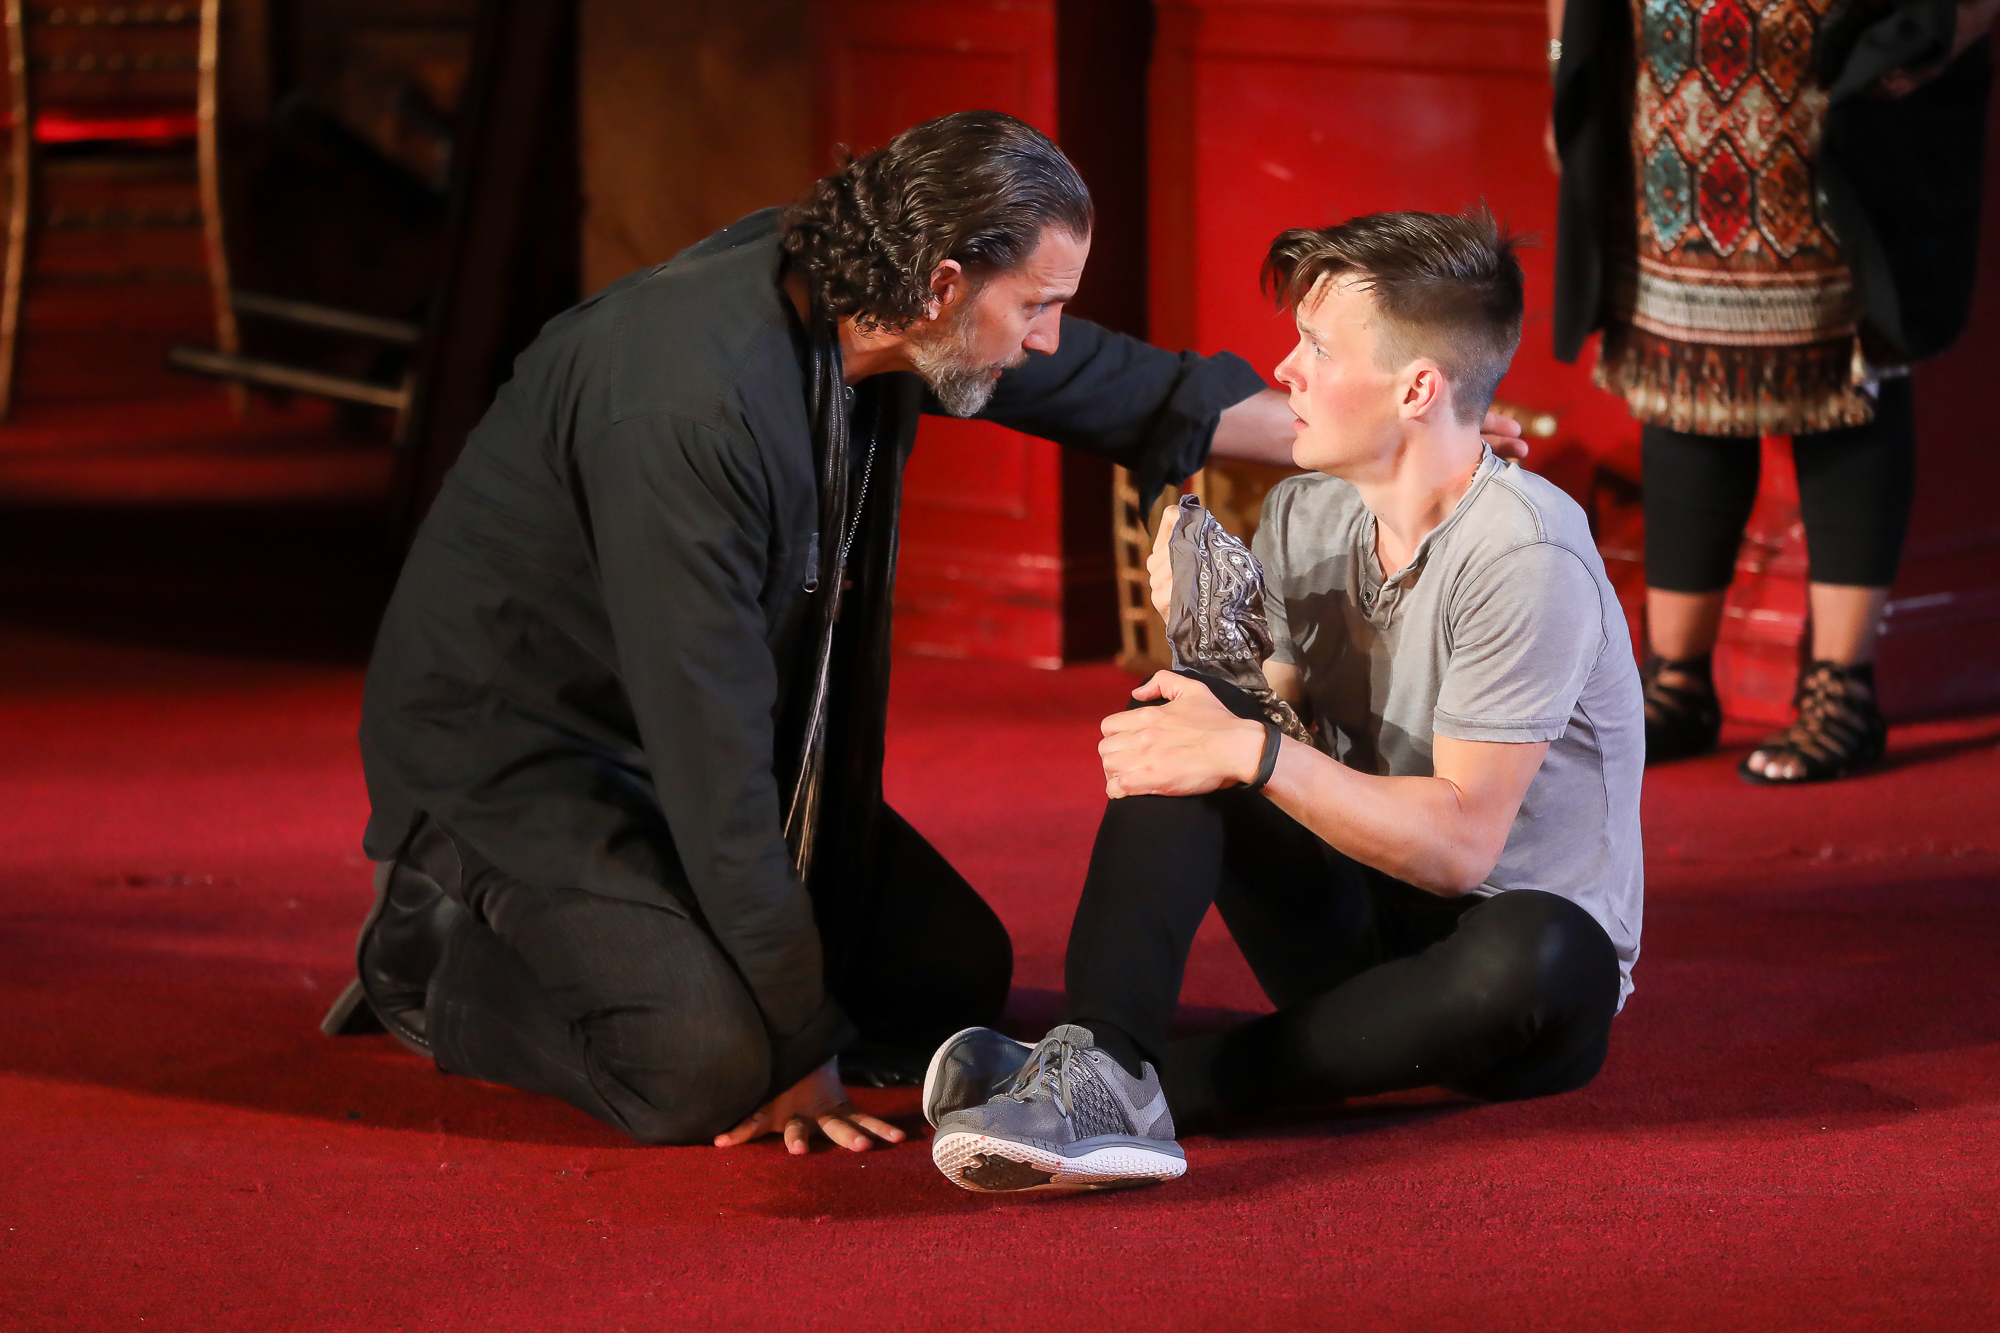 Photo of Ron Menzel as Friar Laurence and Sam Lilja as Romeo in Romeo & Juliet by Tony Powell.